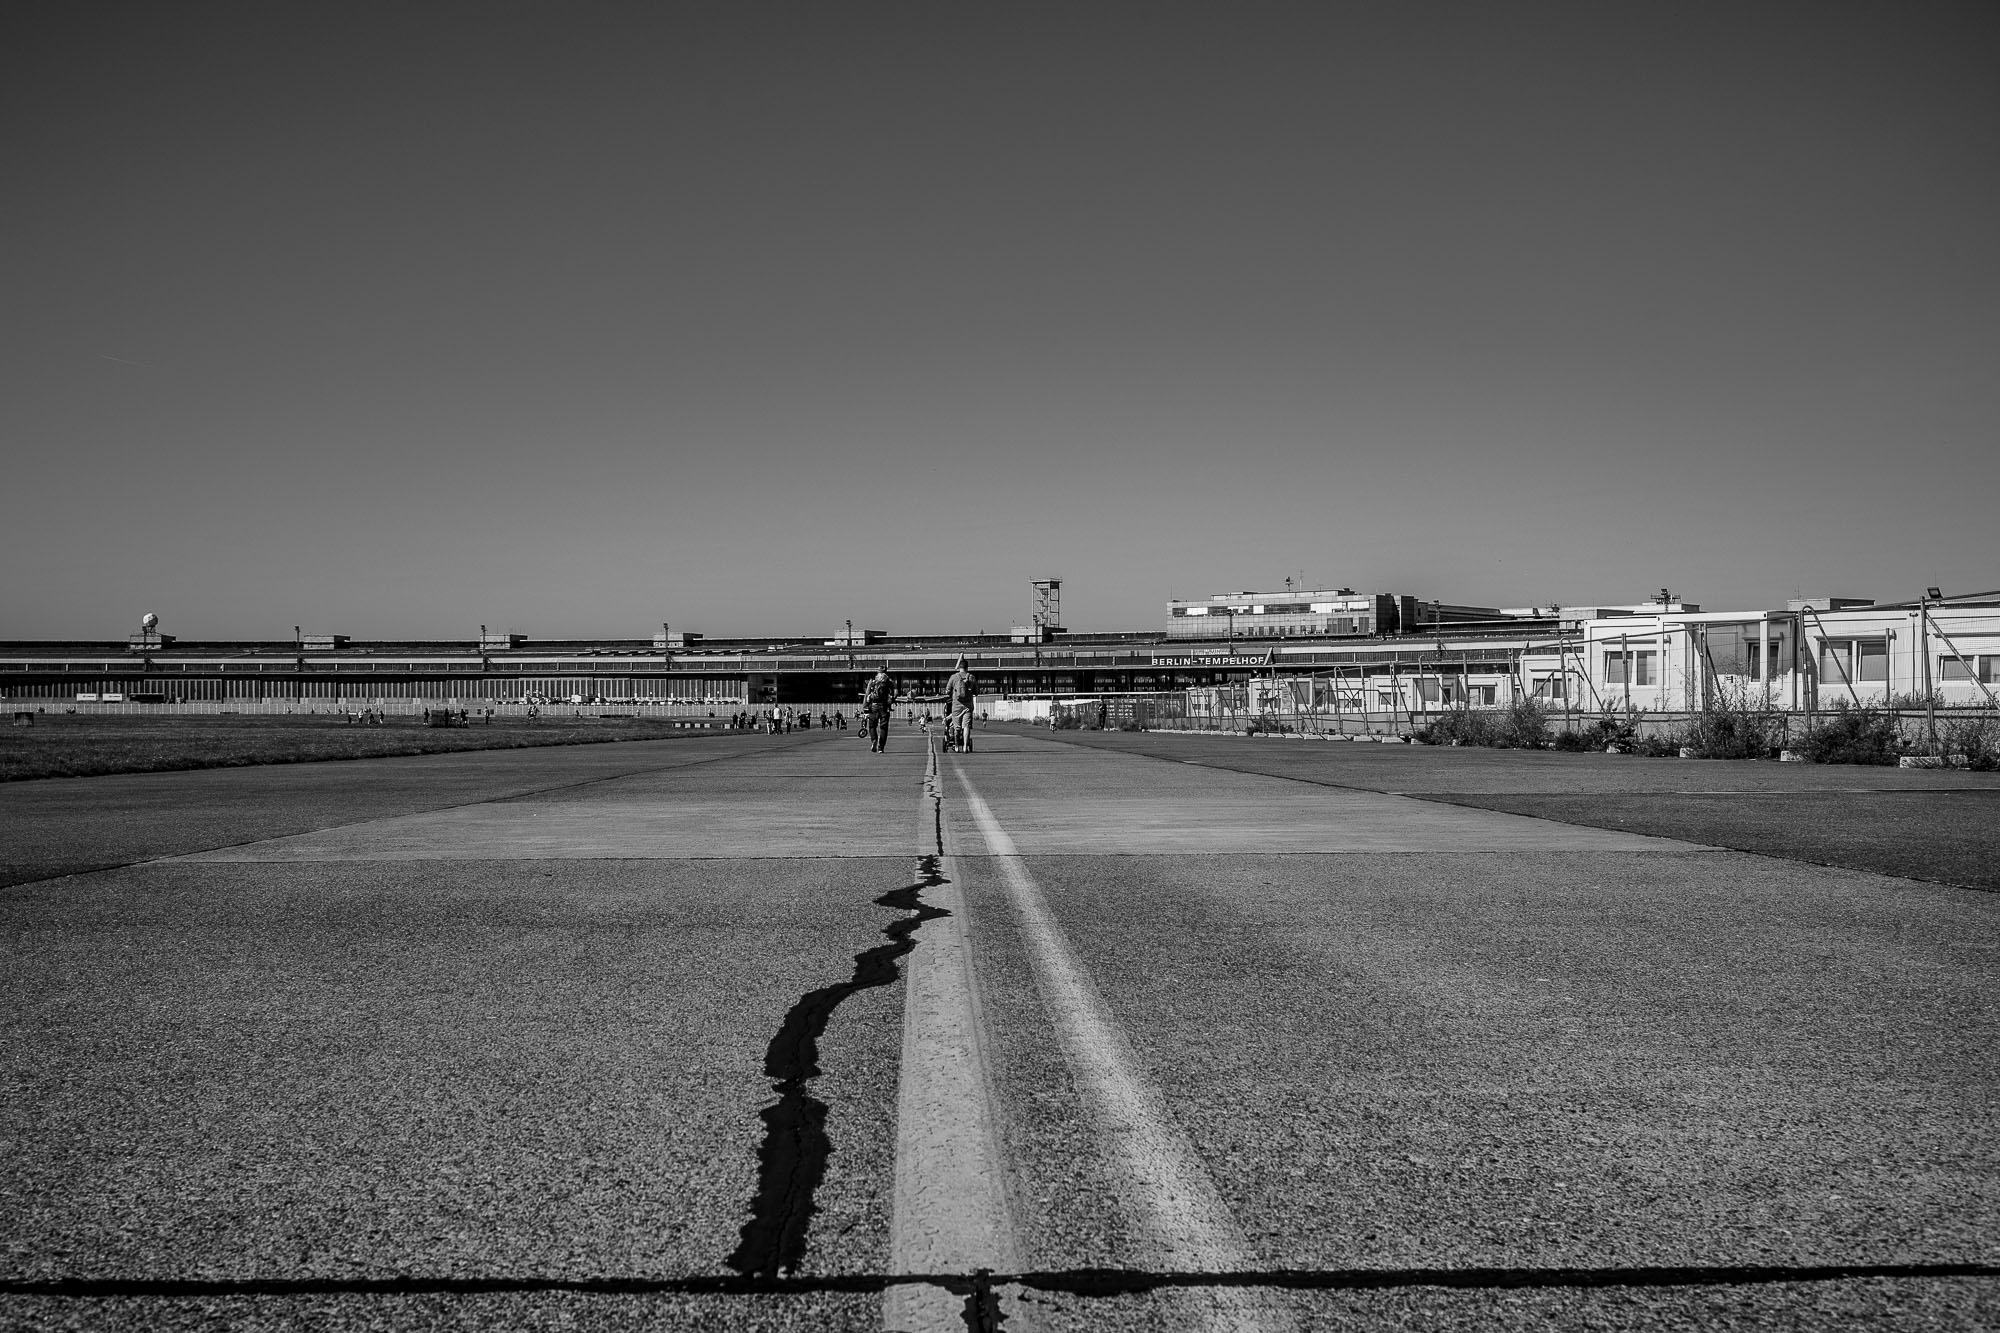 Tempelhof airport with people strolling towards it on the old tarmac